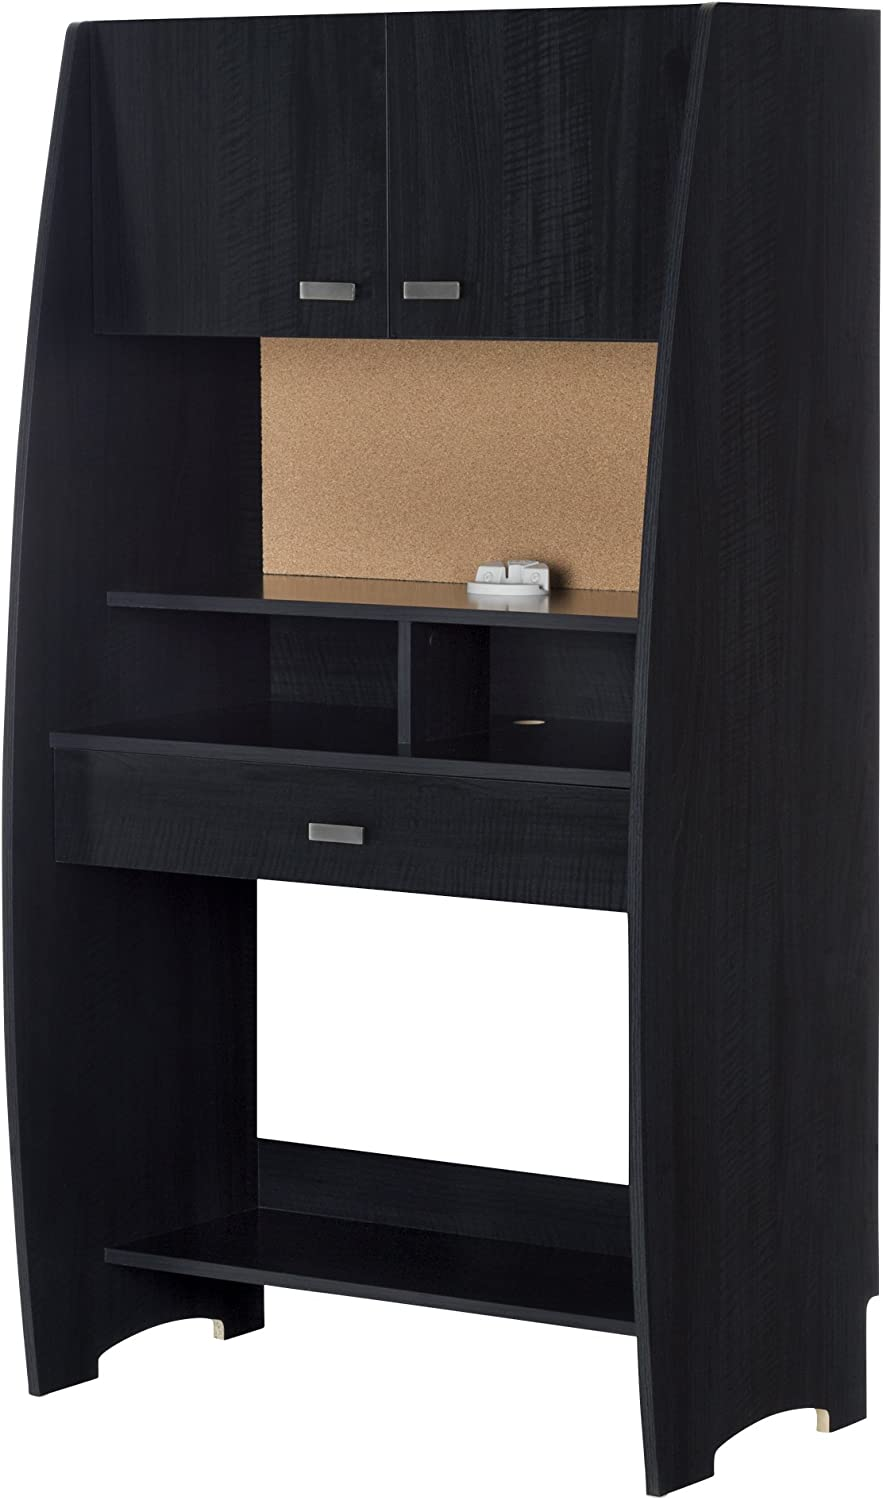 South Shore Furniture Reevo Desk with Hutch and Storage, Black Onyx